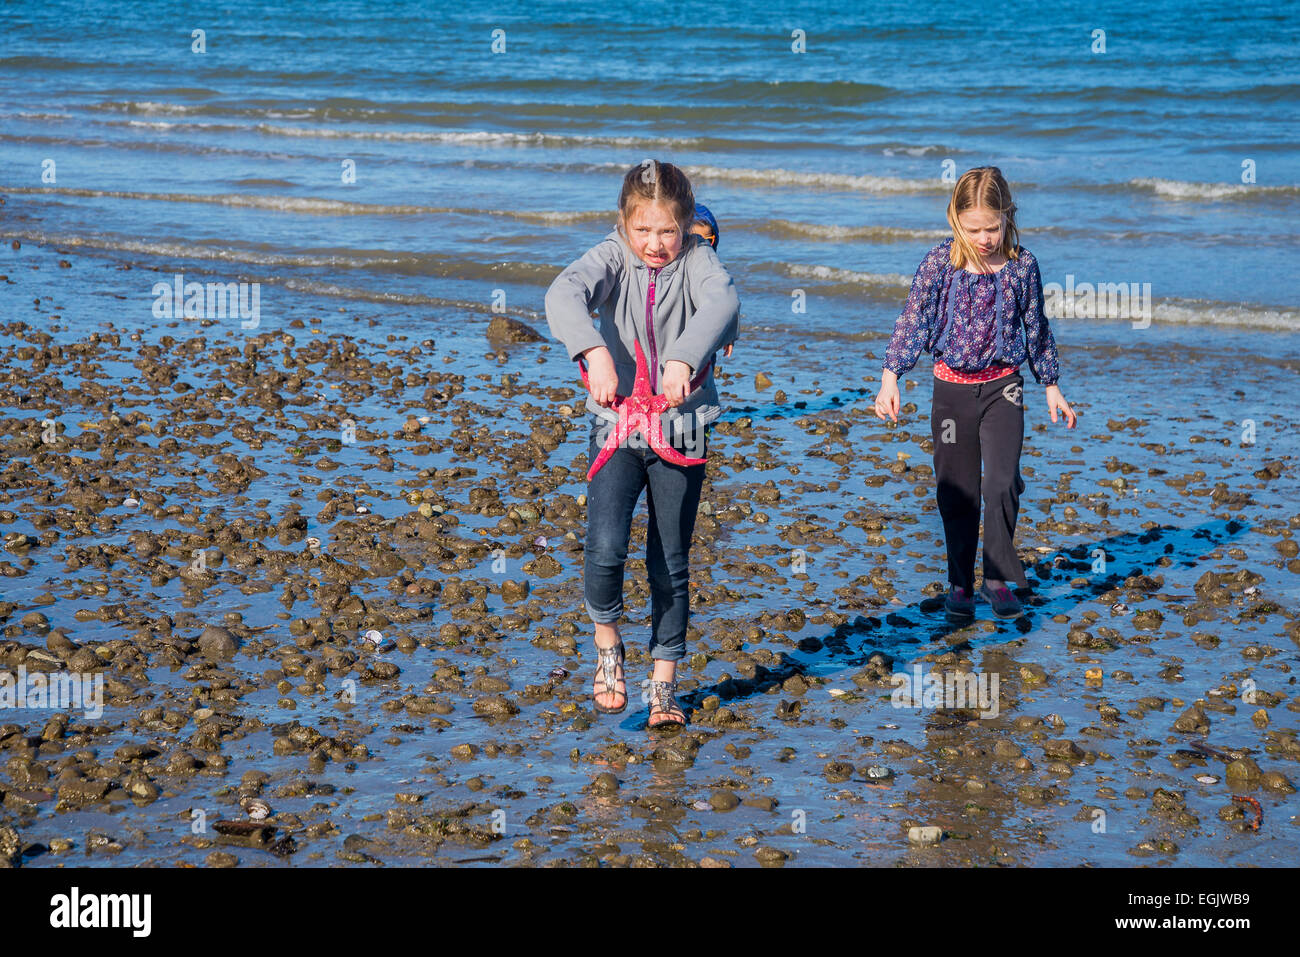 Young girl with dead starfish, Jericho Beach, Vancouver, British Columbia, Canada, - Stock Image